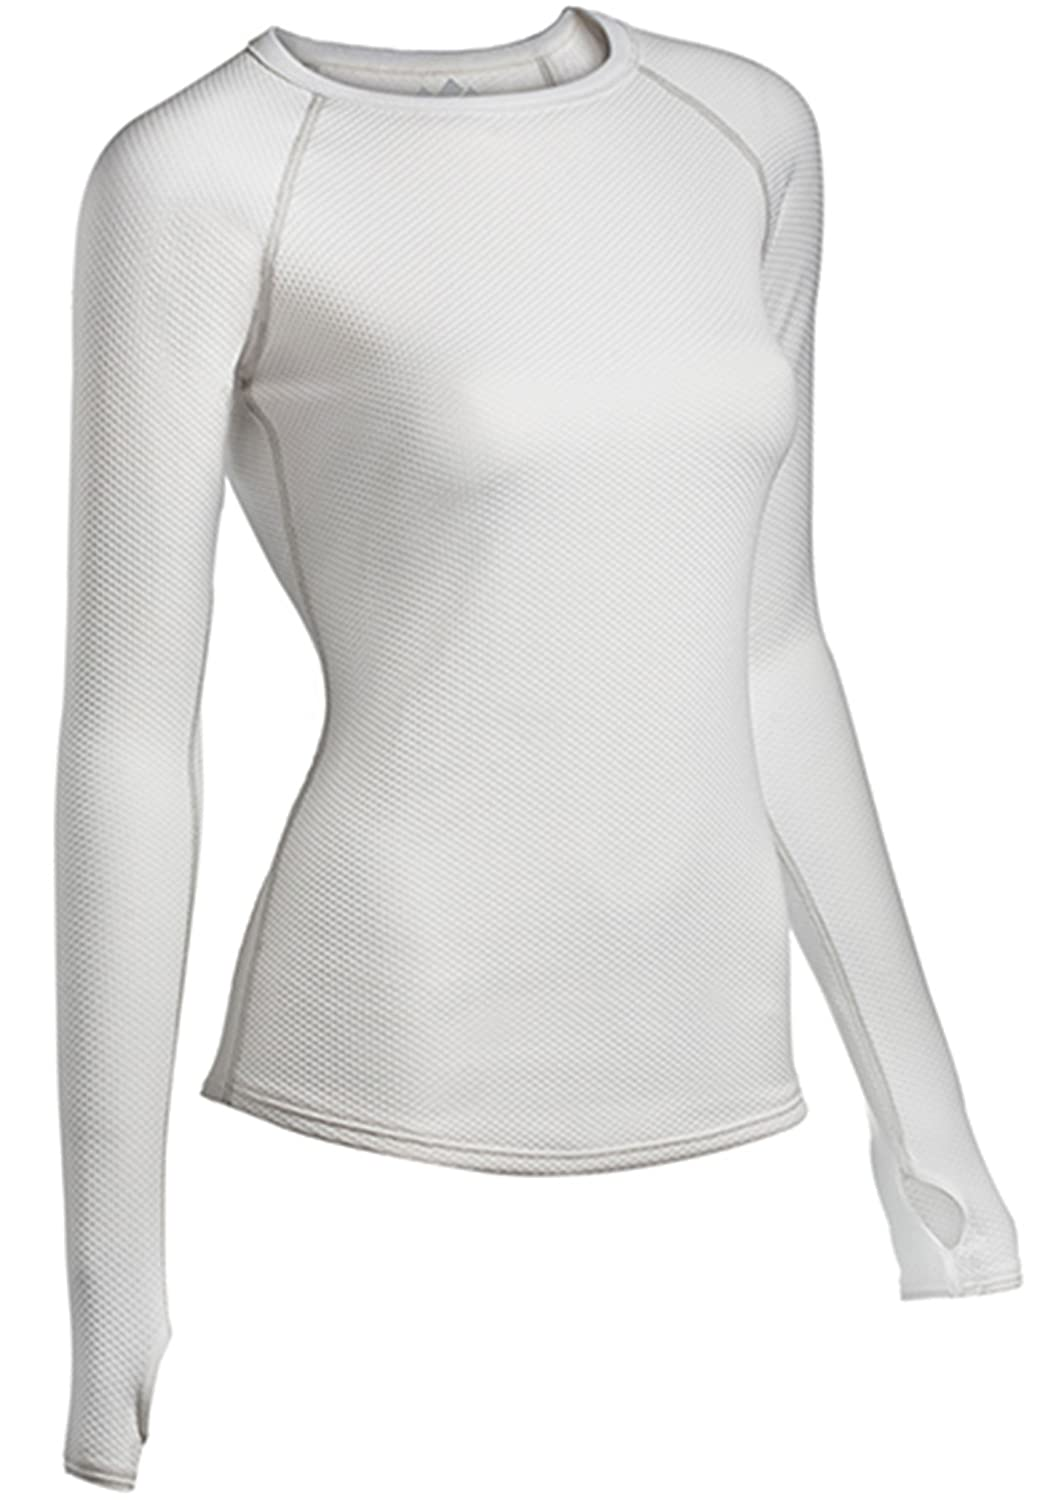 ColdPruf Womens Honeycomb Base Layer Long Sleeve Crew Neck Top X-Large White